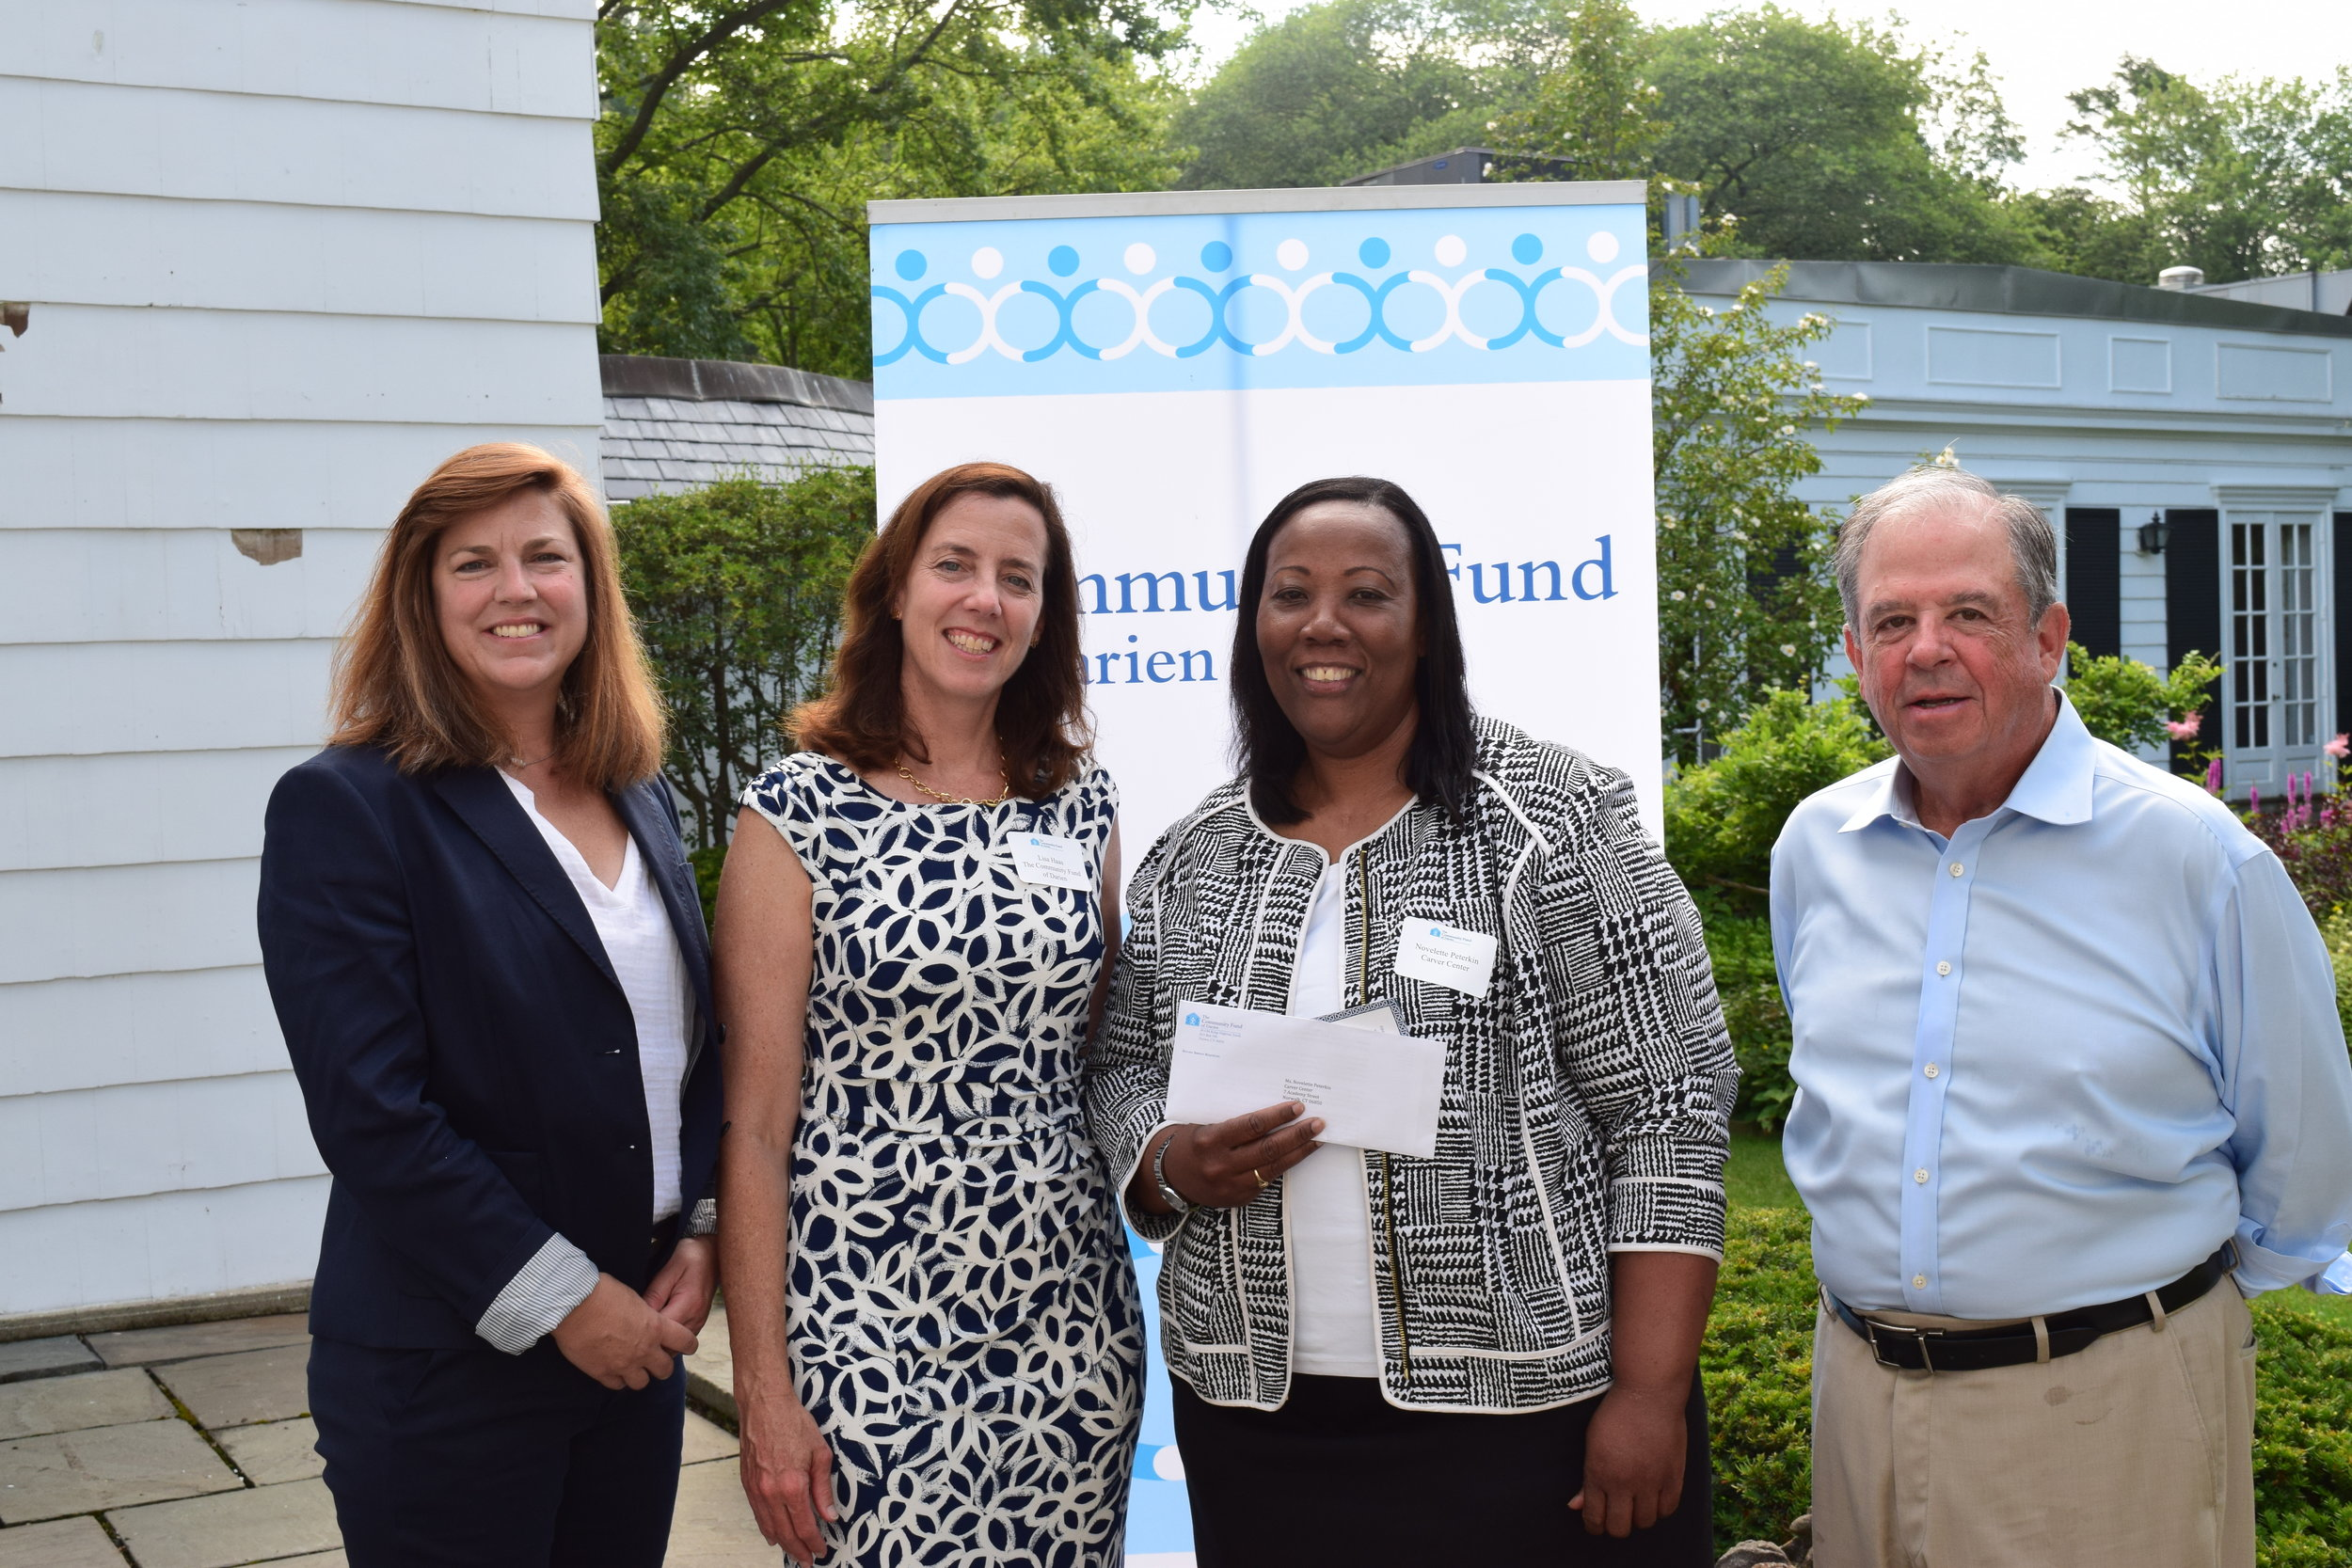 Carrie Bernier, Executive Director, and Lisa Hass, Grants Director, The Community Fund of Darien; Novelette Peterkin, Carver's Executive Director; and Steve Ward (President, Board of Directors, The Community Fund of Darien, and a member of Carver's Finance Committee